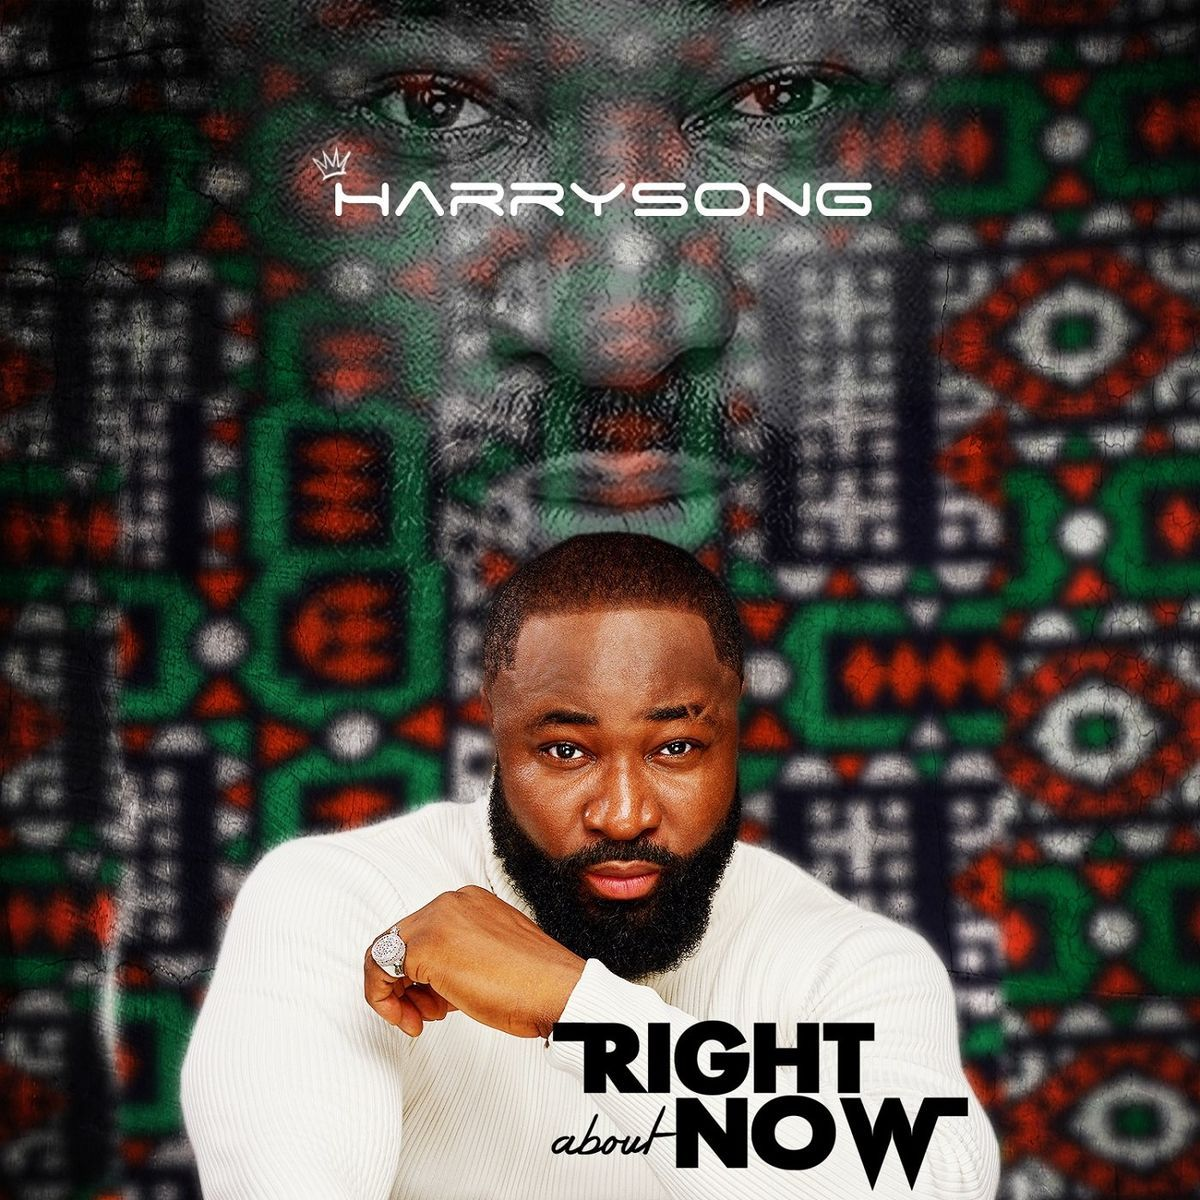 Harrysong - Right About Now (FULL EP)